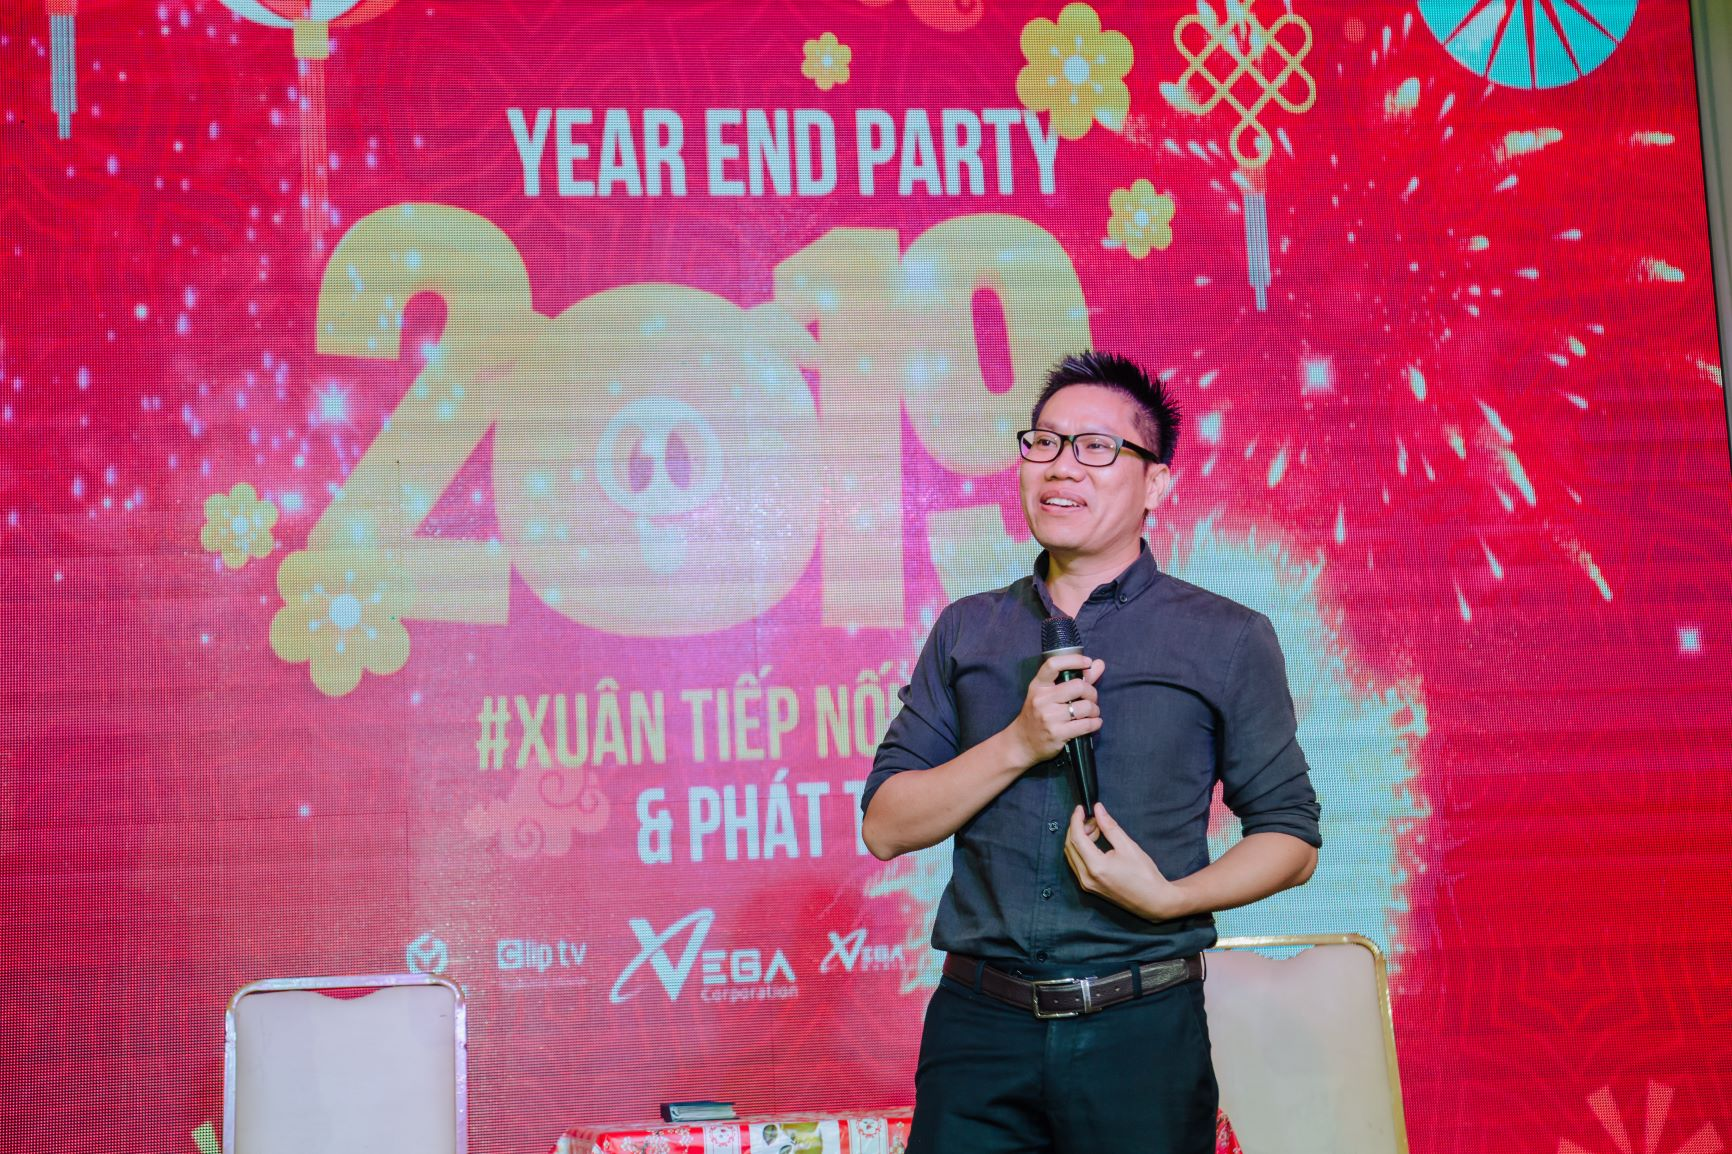 [Vega Sài Gòn] Year End Party 2018 (29.01.2019)